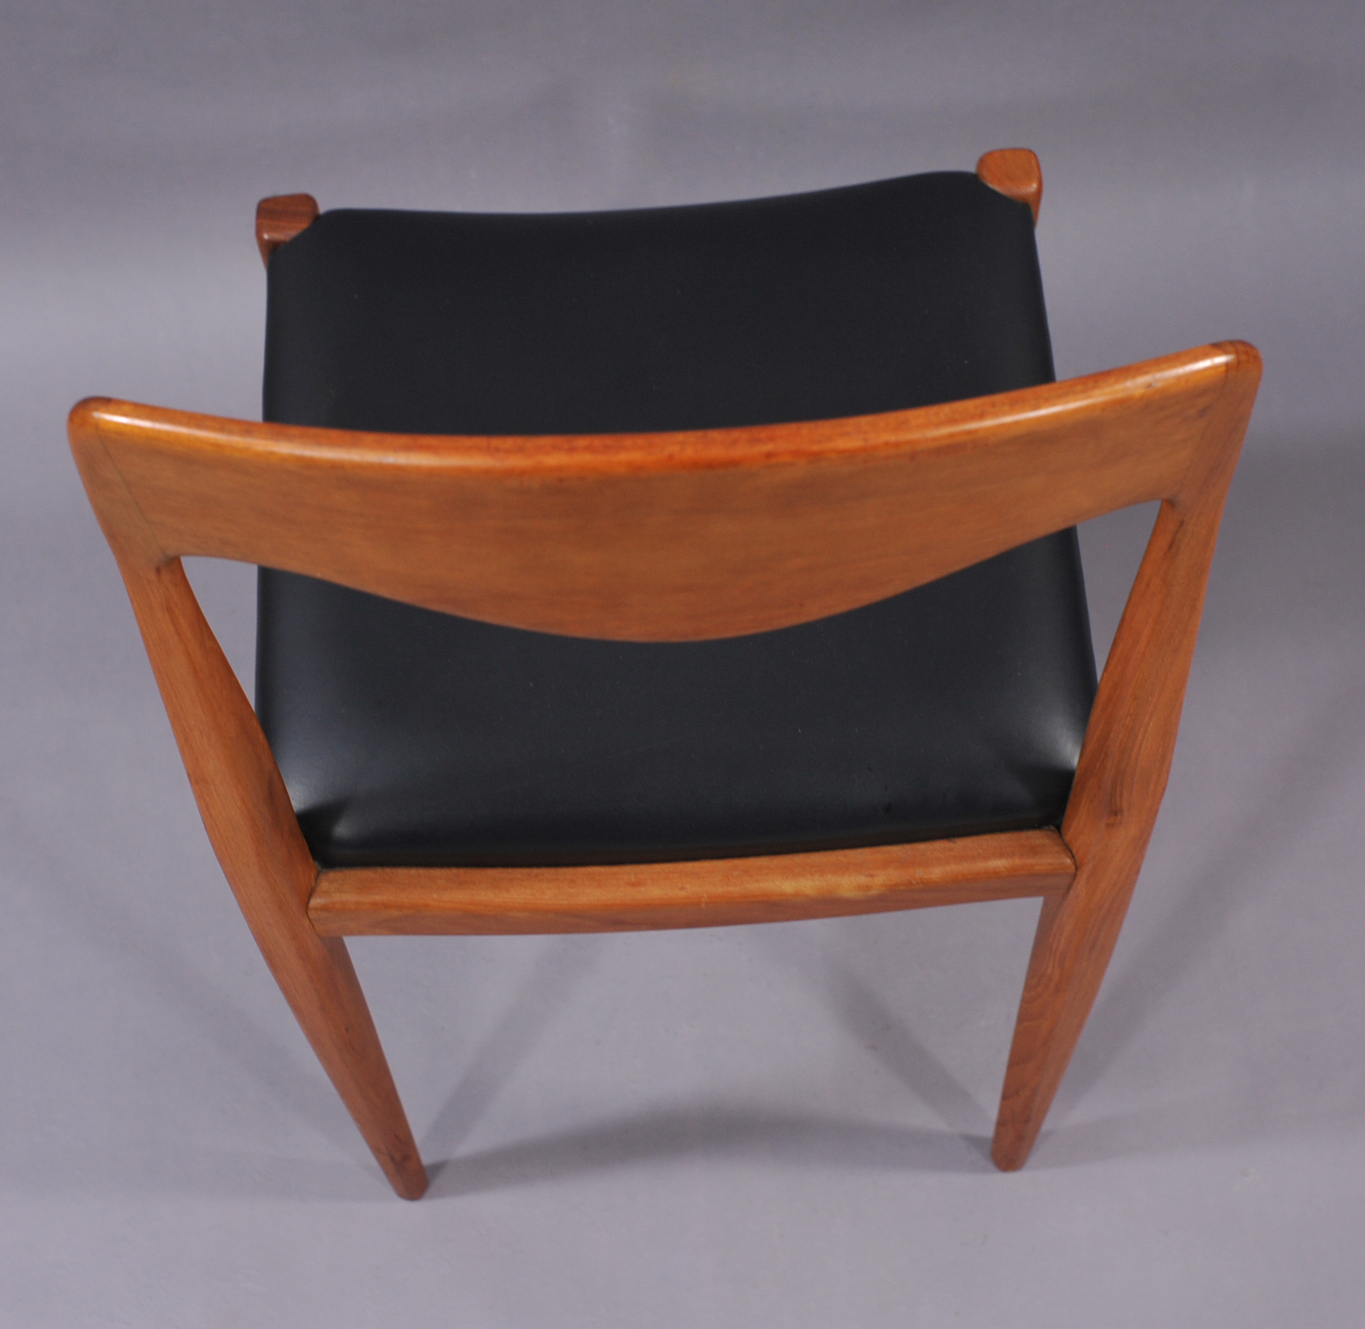 Gamma chairs by Kappa